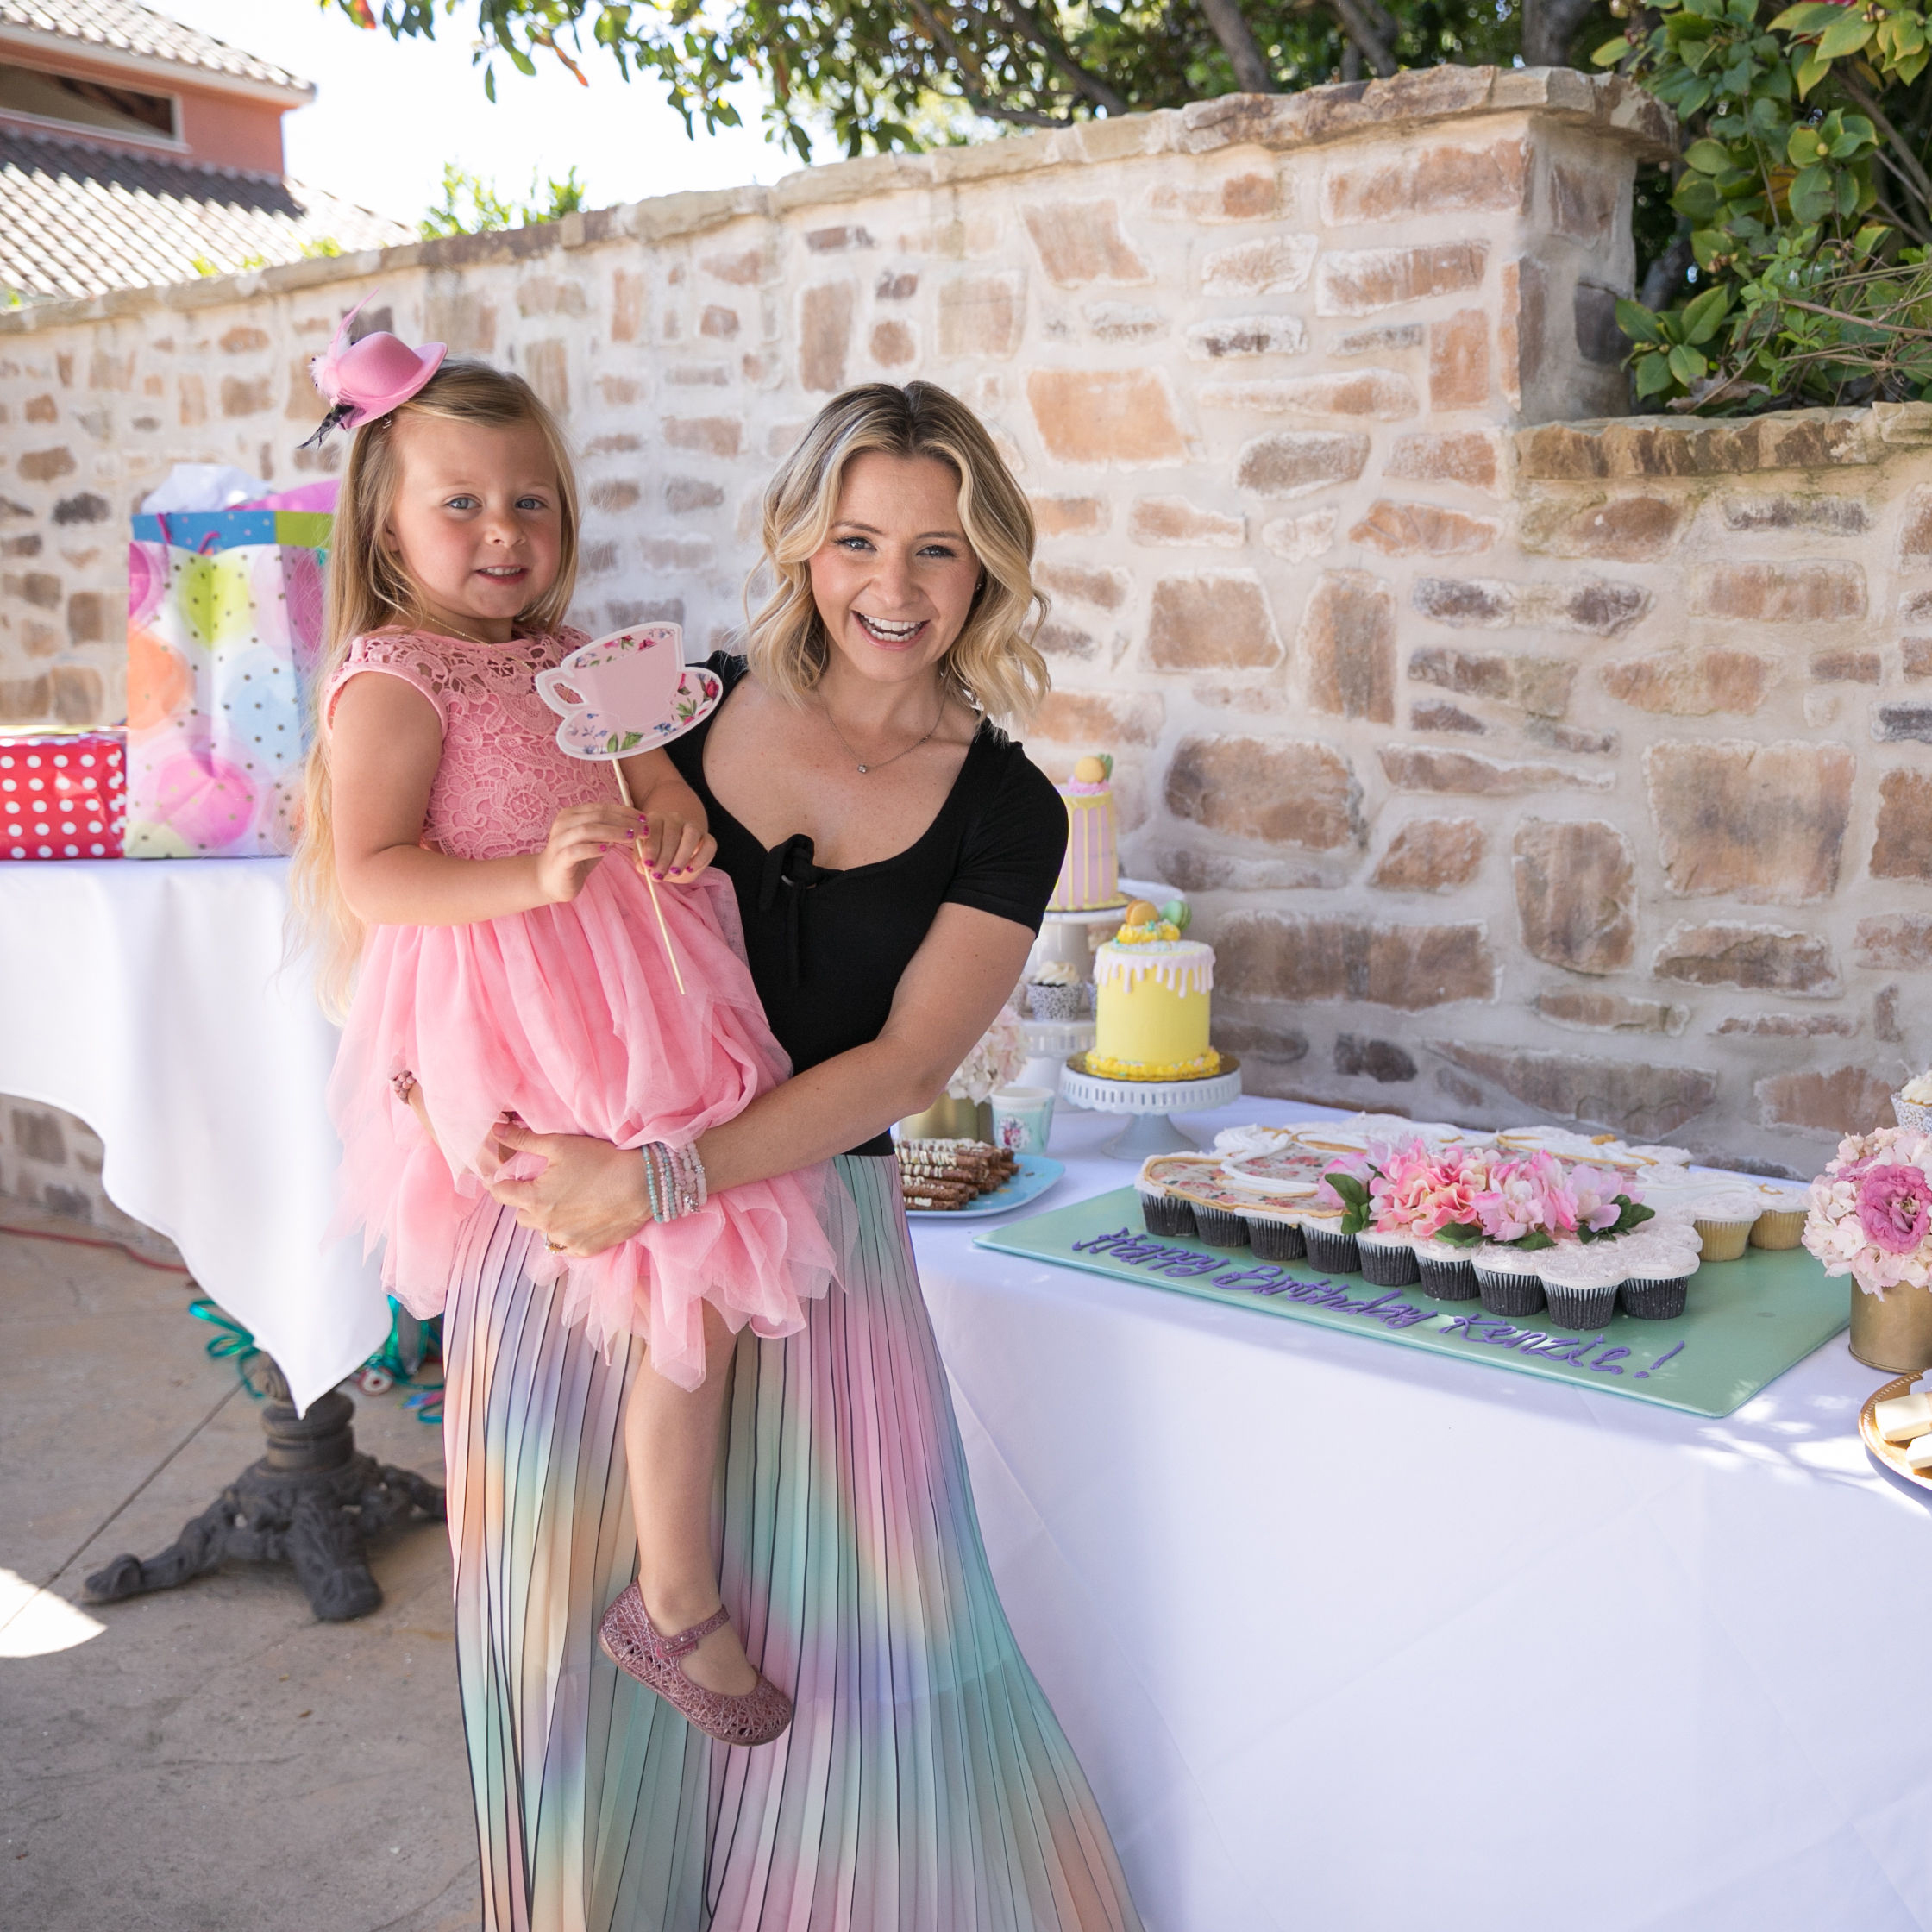 Actress Beverley Mitchell Reveals How She Threw Her Daughter the Perfect Birthday